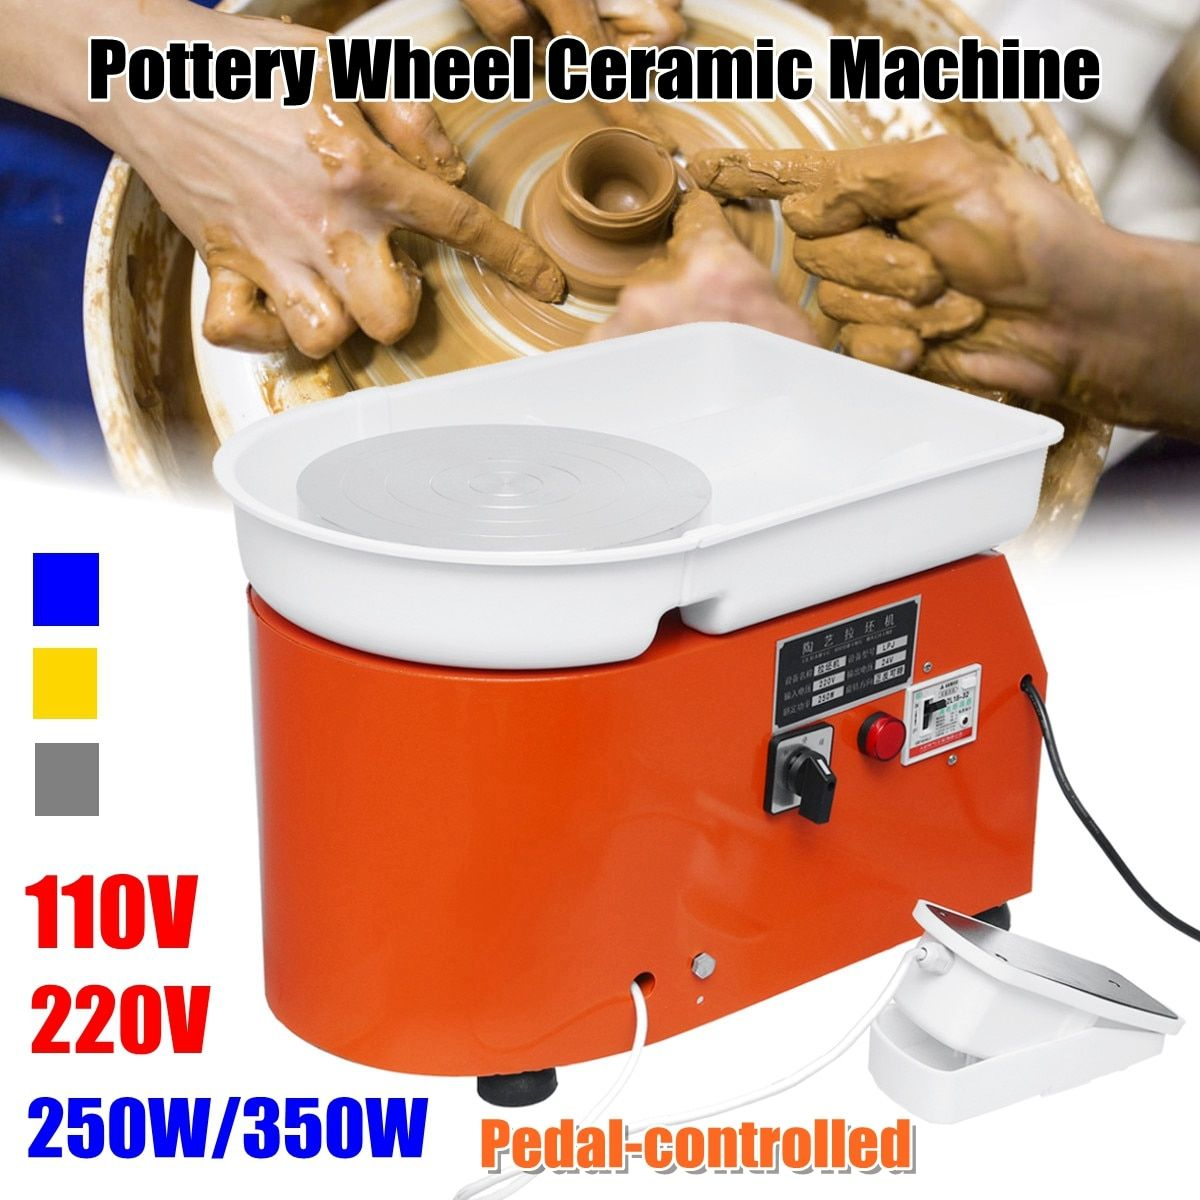 250W/350W Electric Tours Wheel Pottery Machine Ceramic Clay Potter Art For Ceramic Work 110V/220V